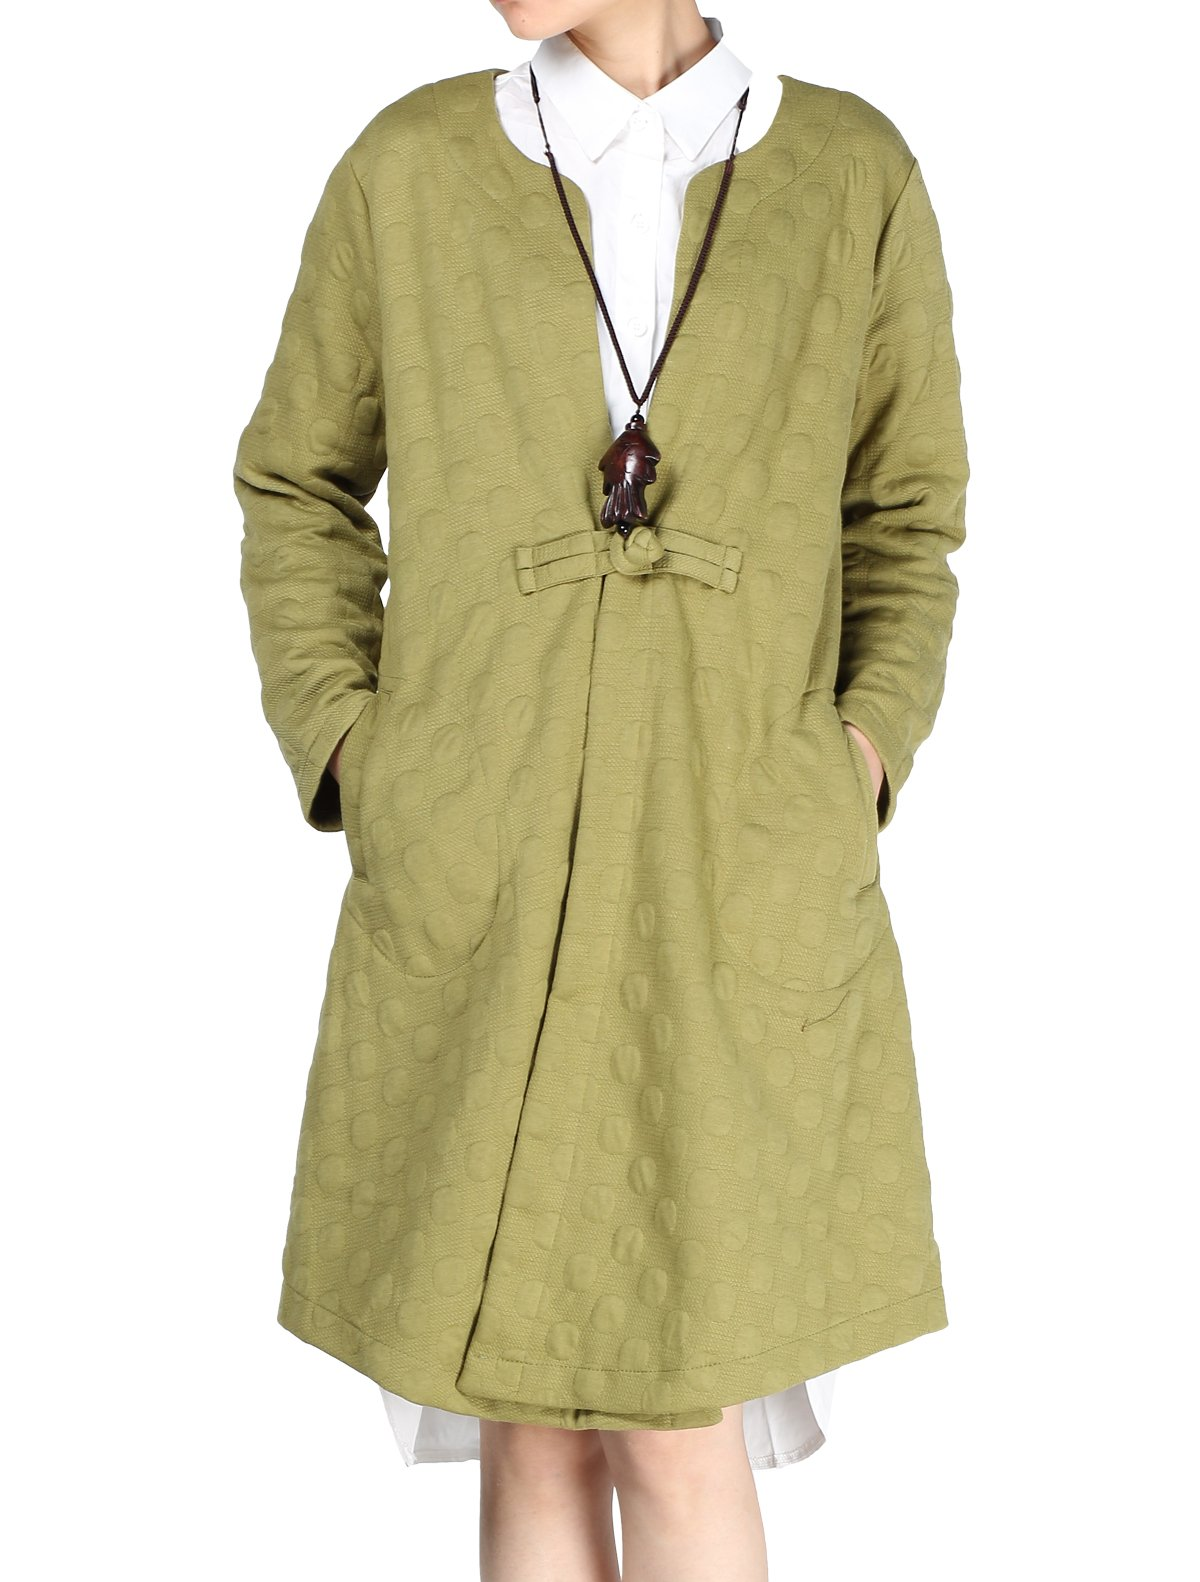 Mordenmiss Women's Long Sleeves One Chinese Frog Button Trench Coat Pockets(Large, Style 1-Green)